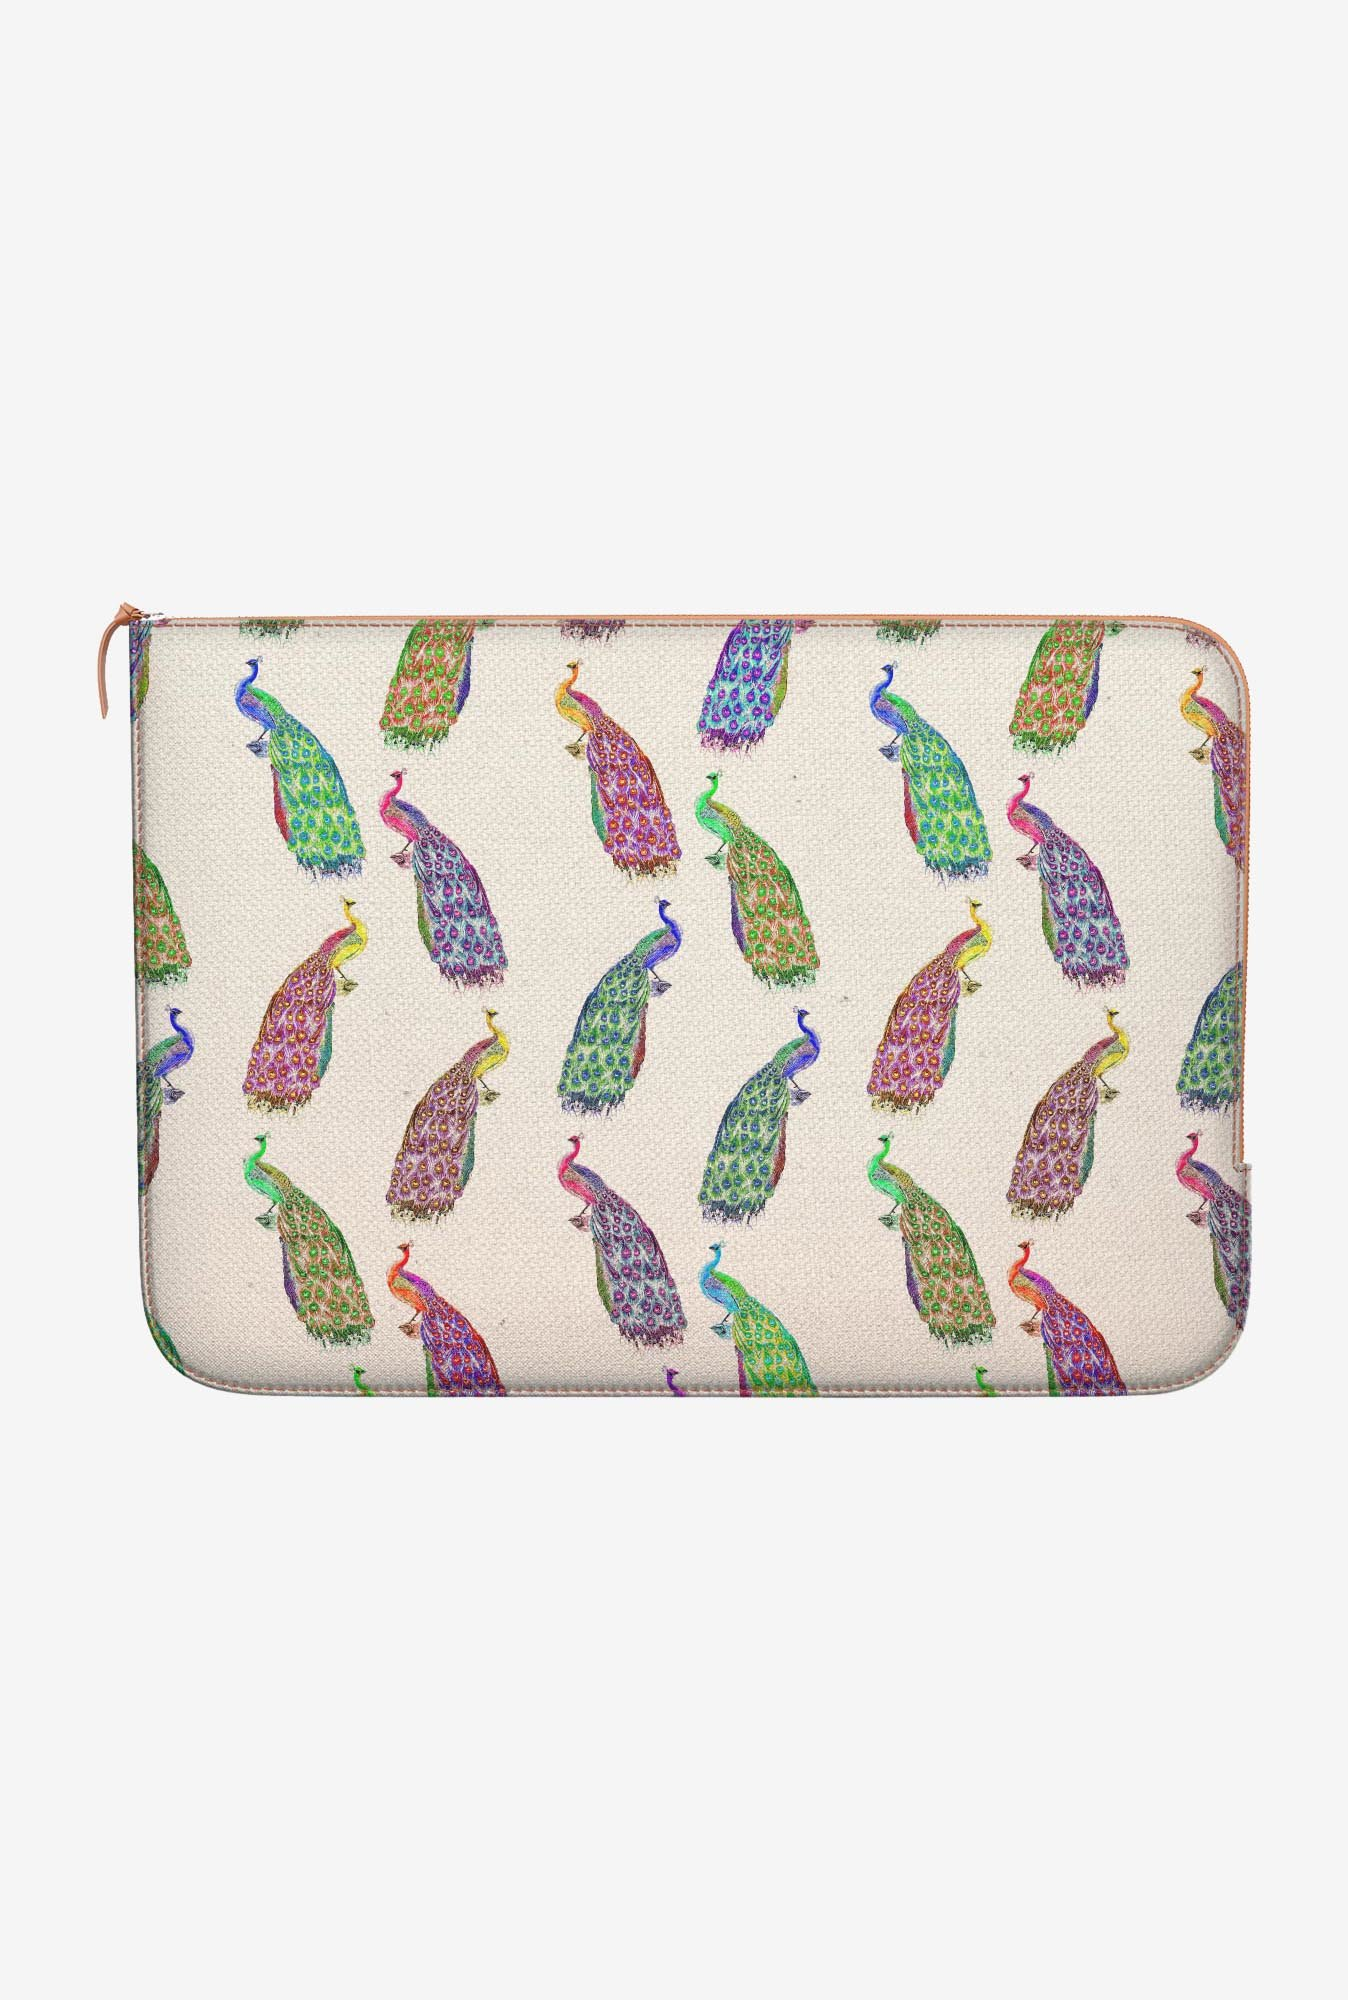 DailyObjects Retro Peacock MacBook Pro 15 Zippered Sleeve